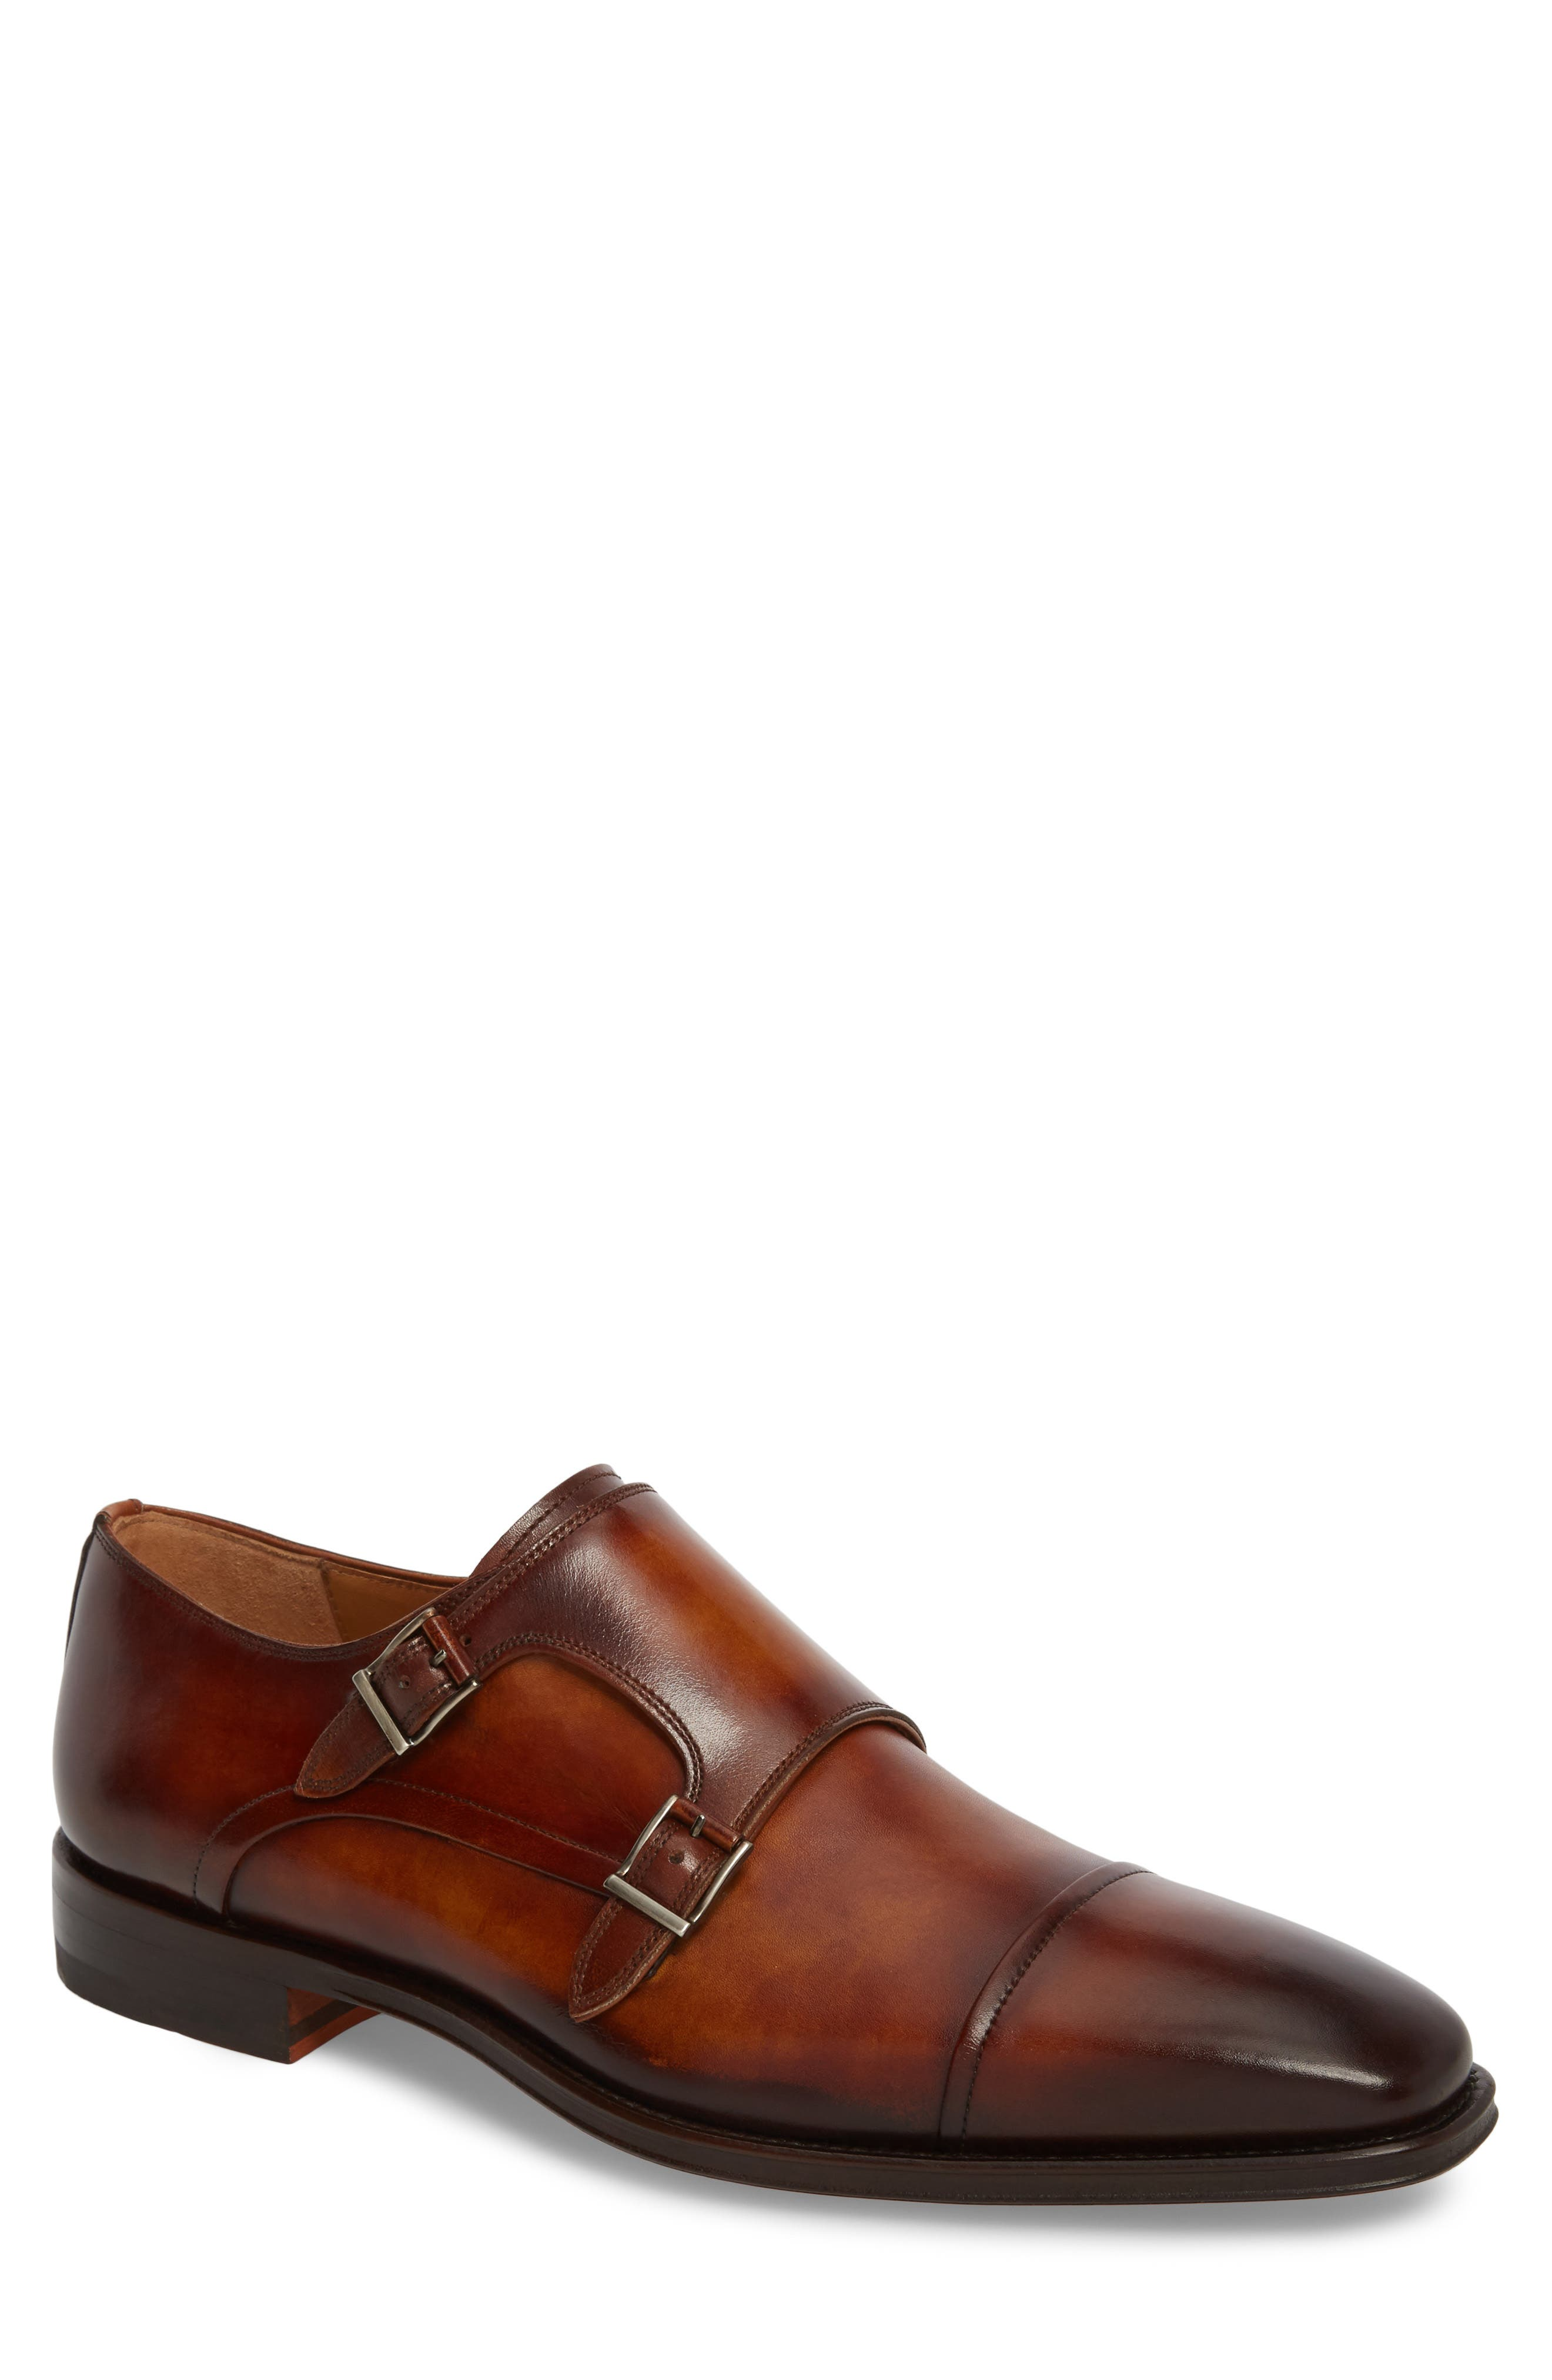 Silvio Double Monk Strap Shoe,                             Main thumbnail 1, color,                             230